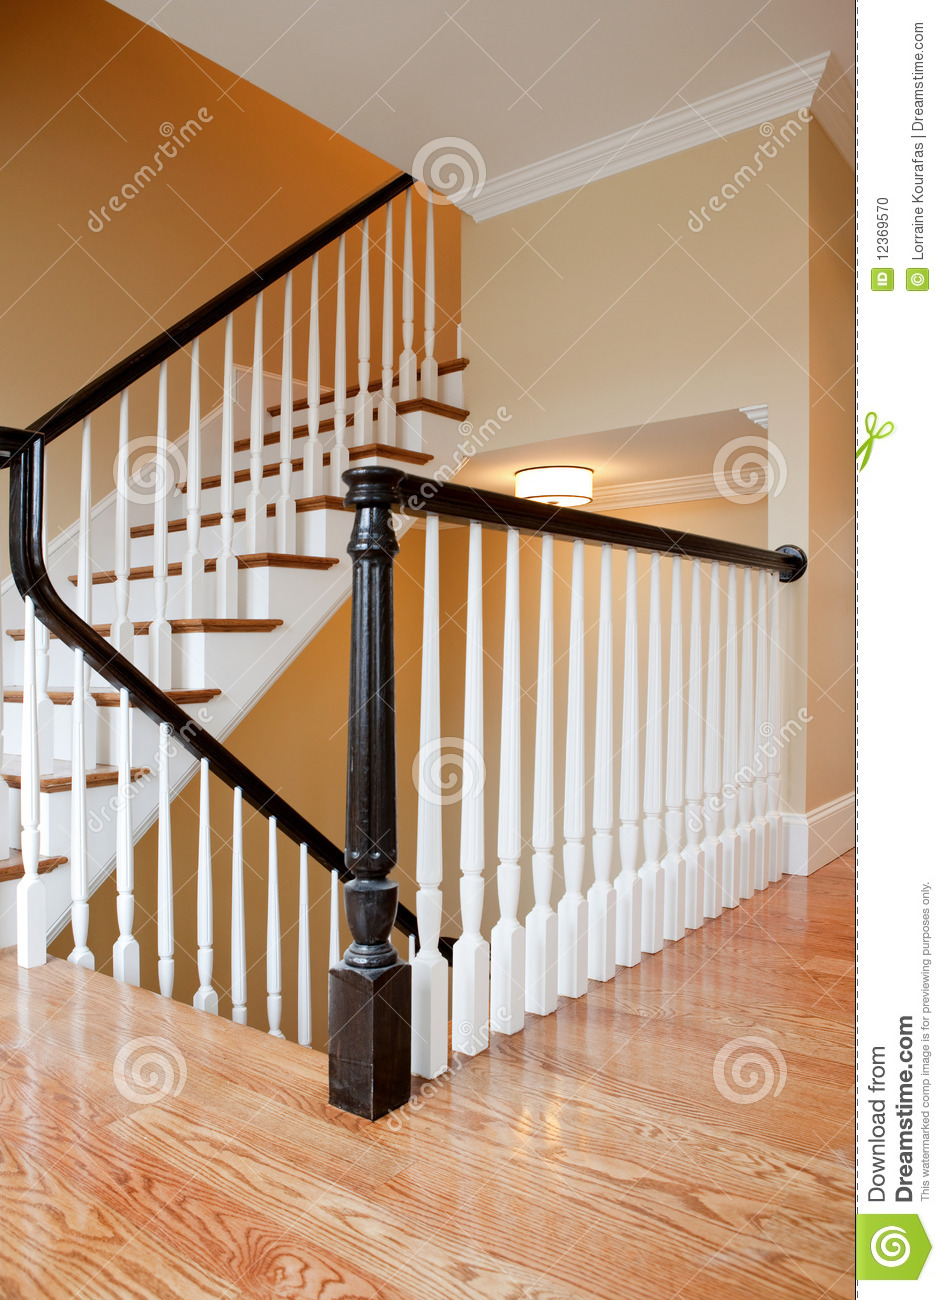 Escalier int rieur construction neuve photo stock image for Photo escalier interieur